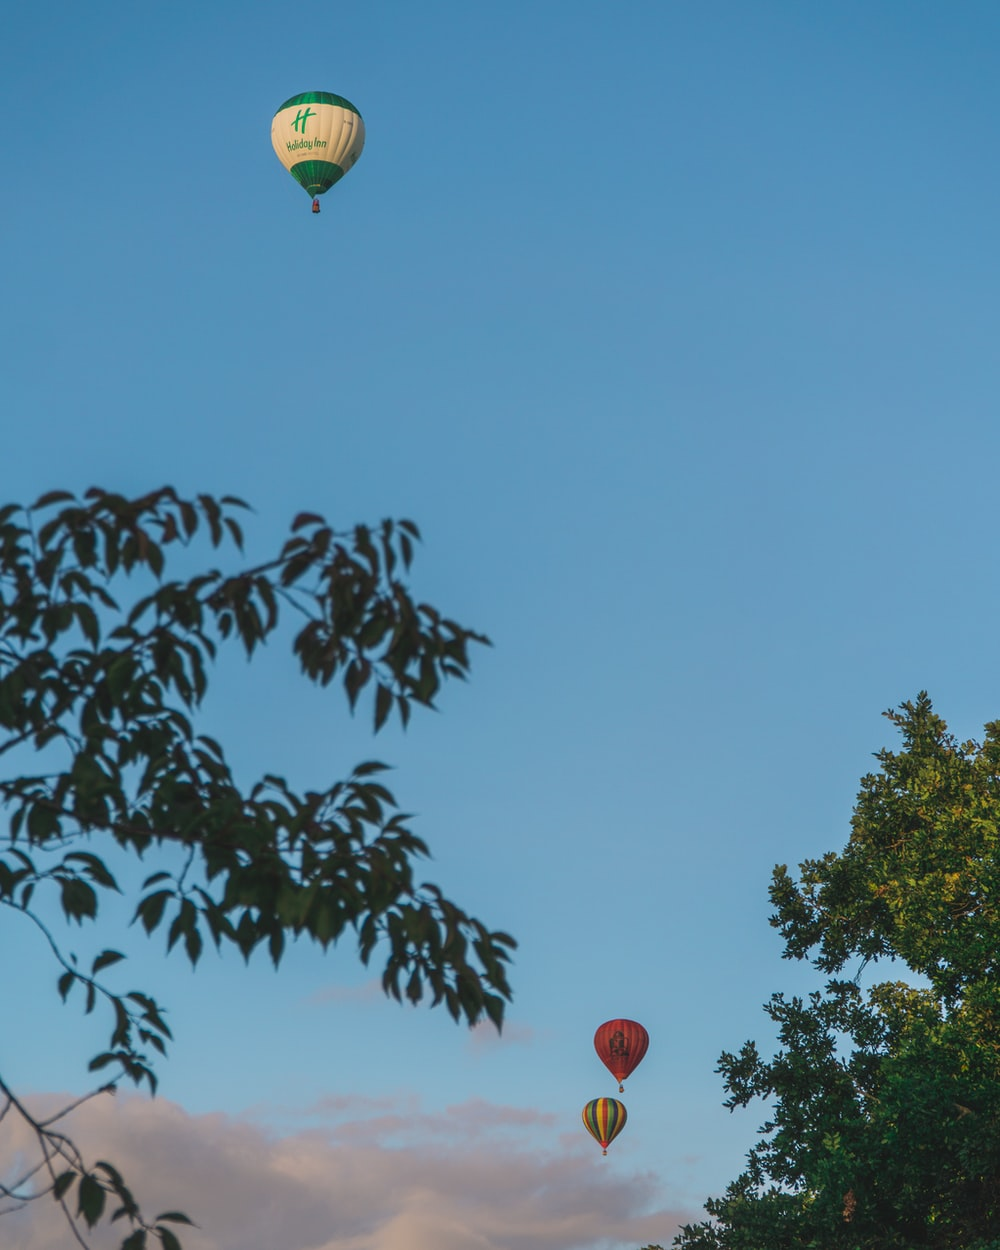 three assorted-color hot air balloons near trees